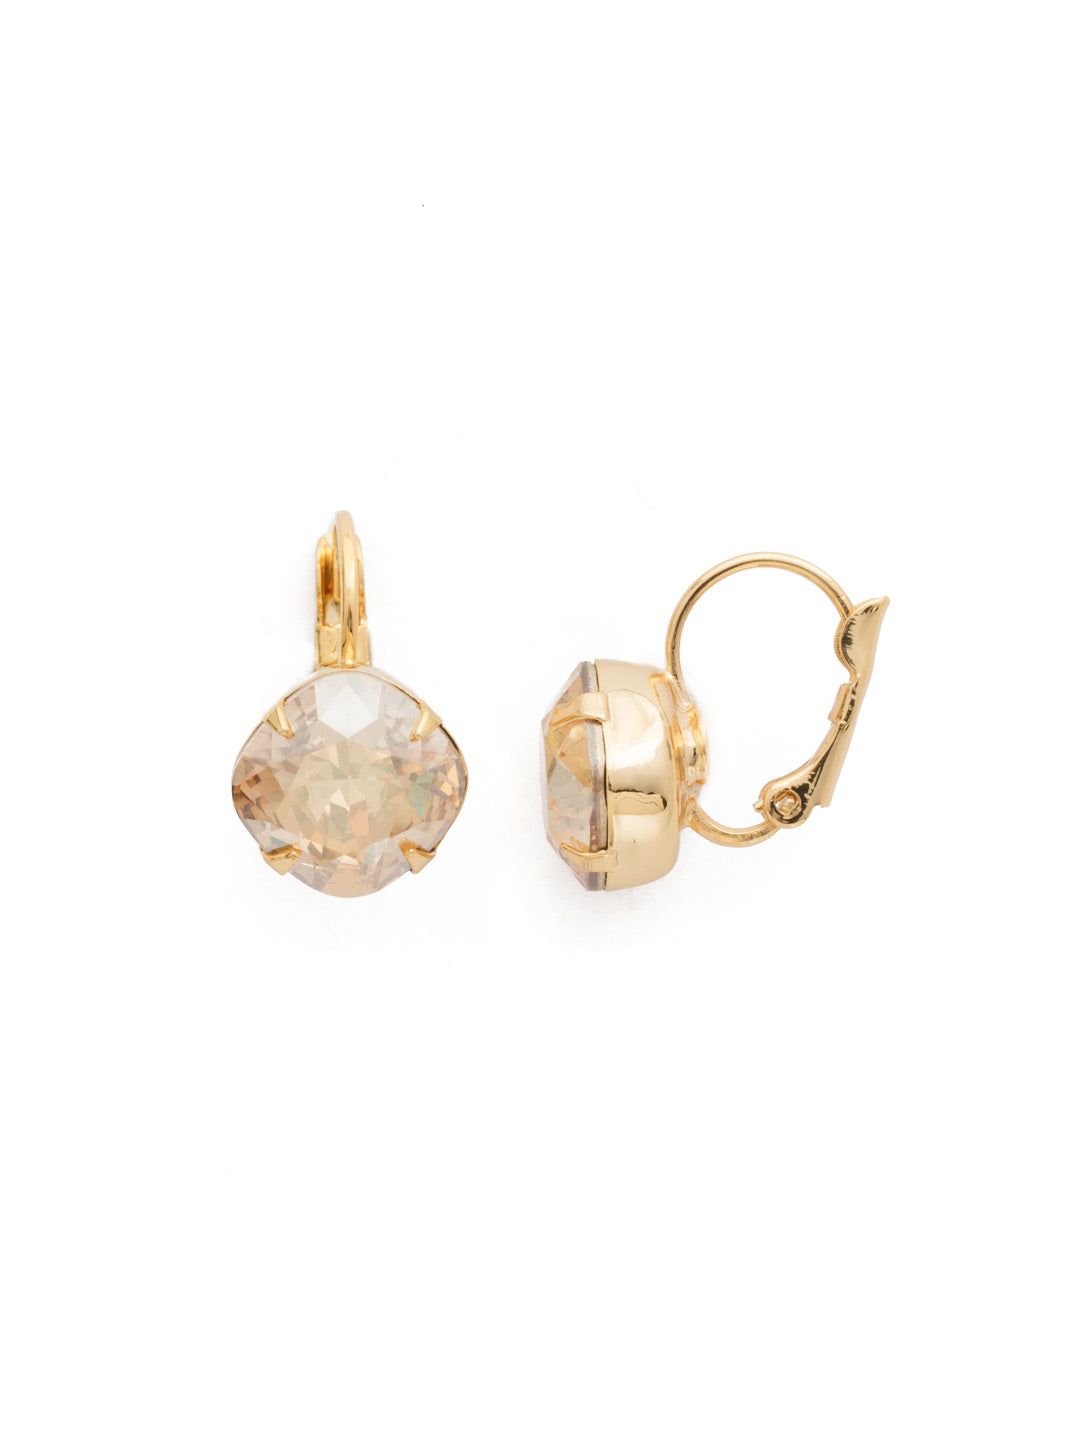 Cushion Cut French Wire Earrings - Sorrelli Essentials - EDL12BGDCH